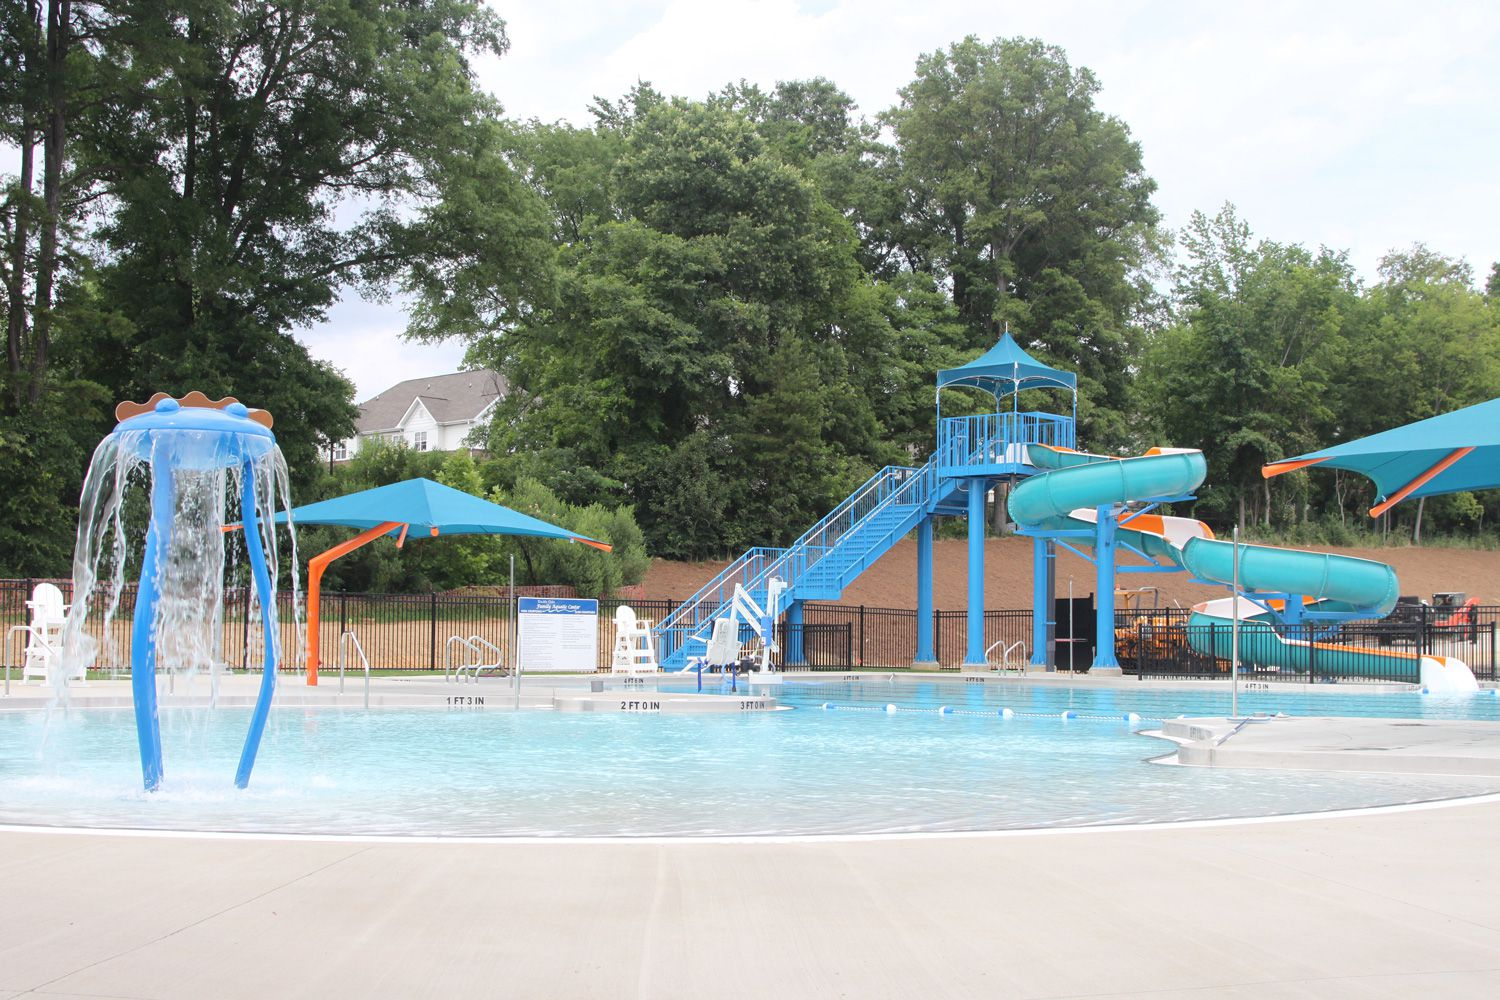 Charlotte nc public pools and water parks - Indoor swimming pools charlotte nc ...